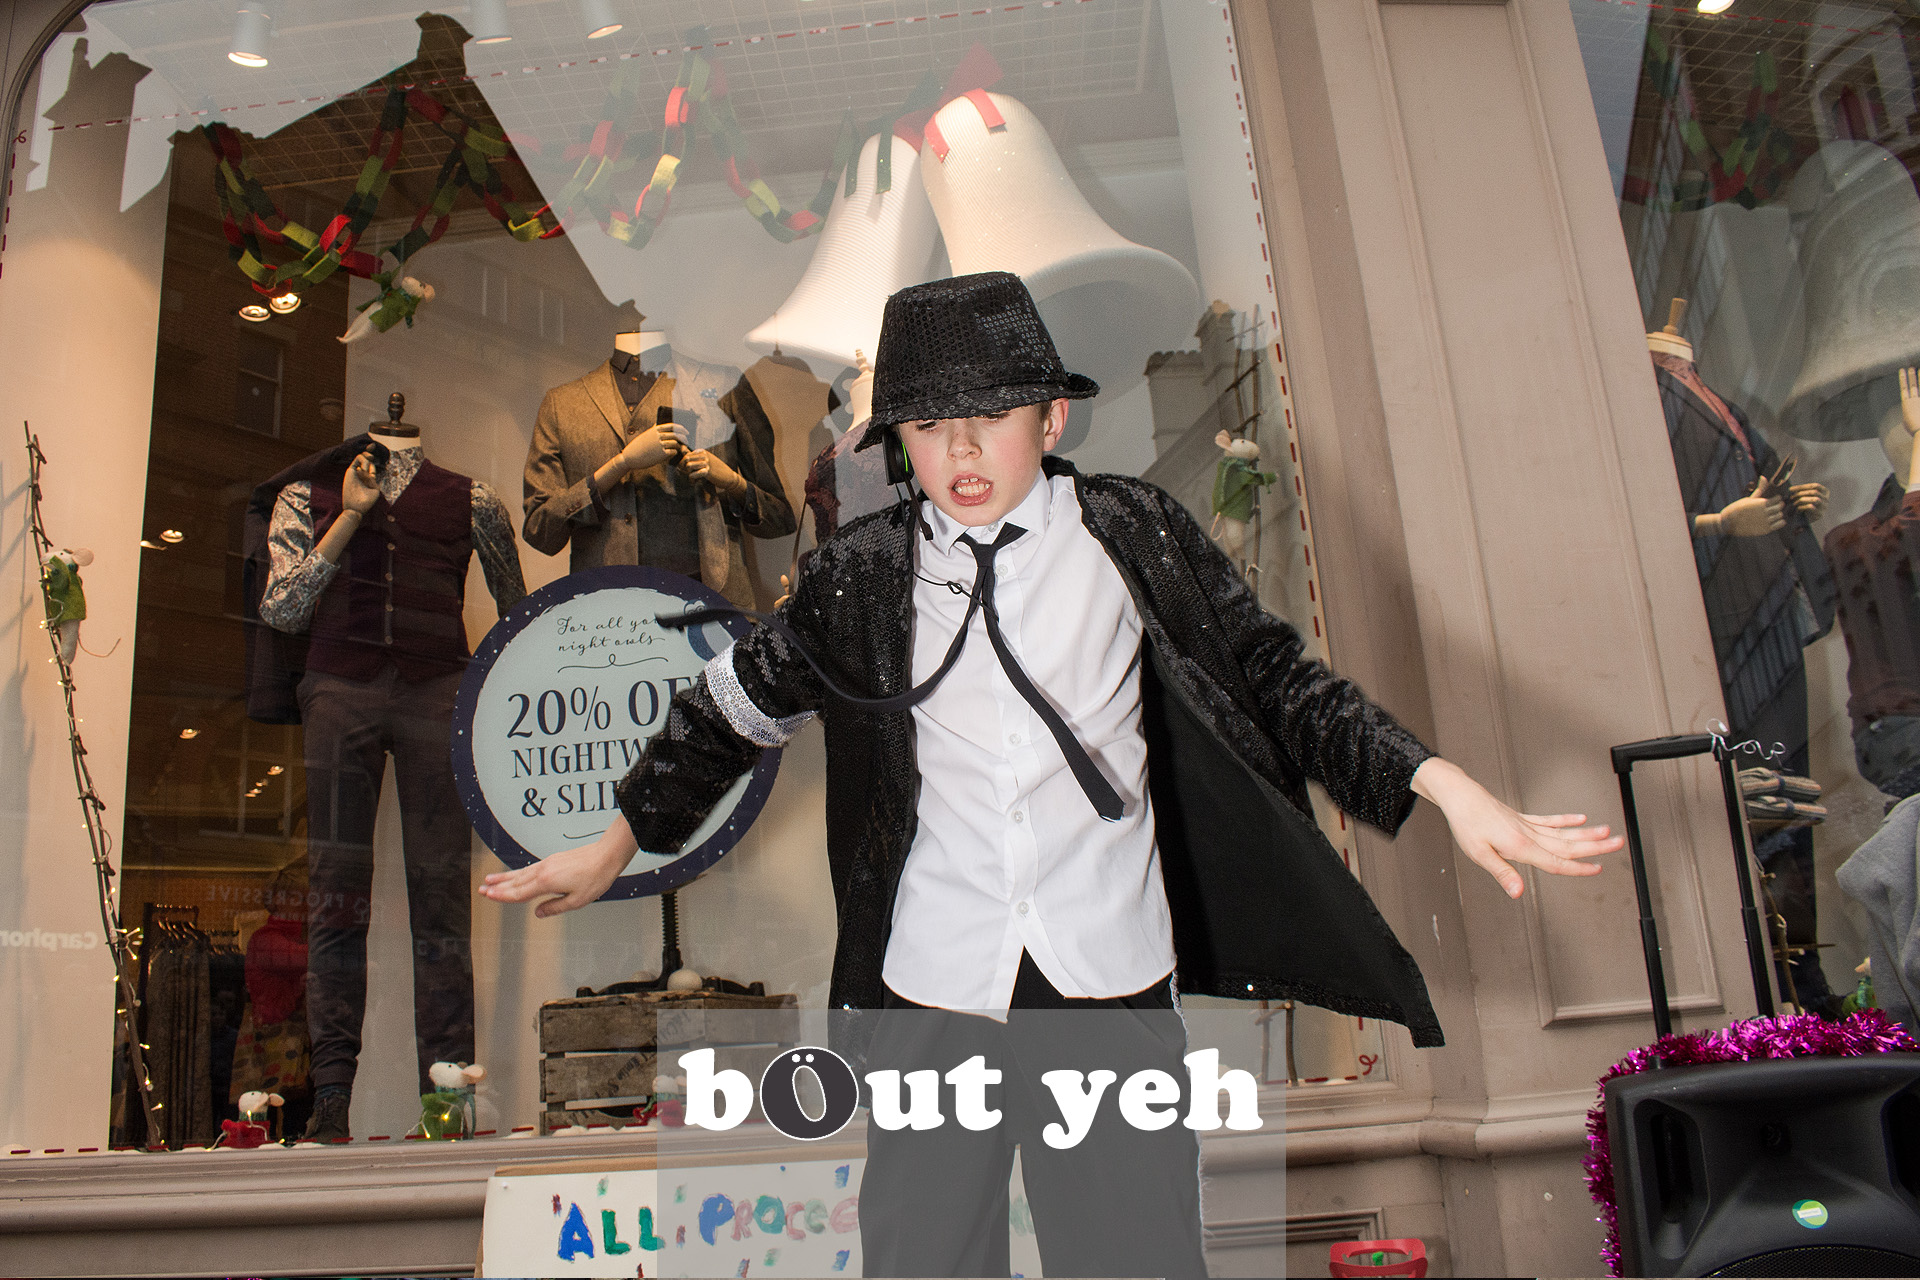 Young Michael Jackson impersonator entertains the crowd at Cornmarket Belfast. Photo 3220.